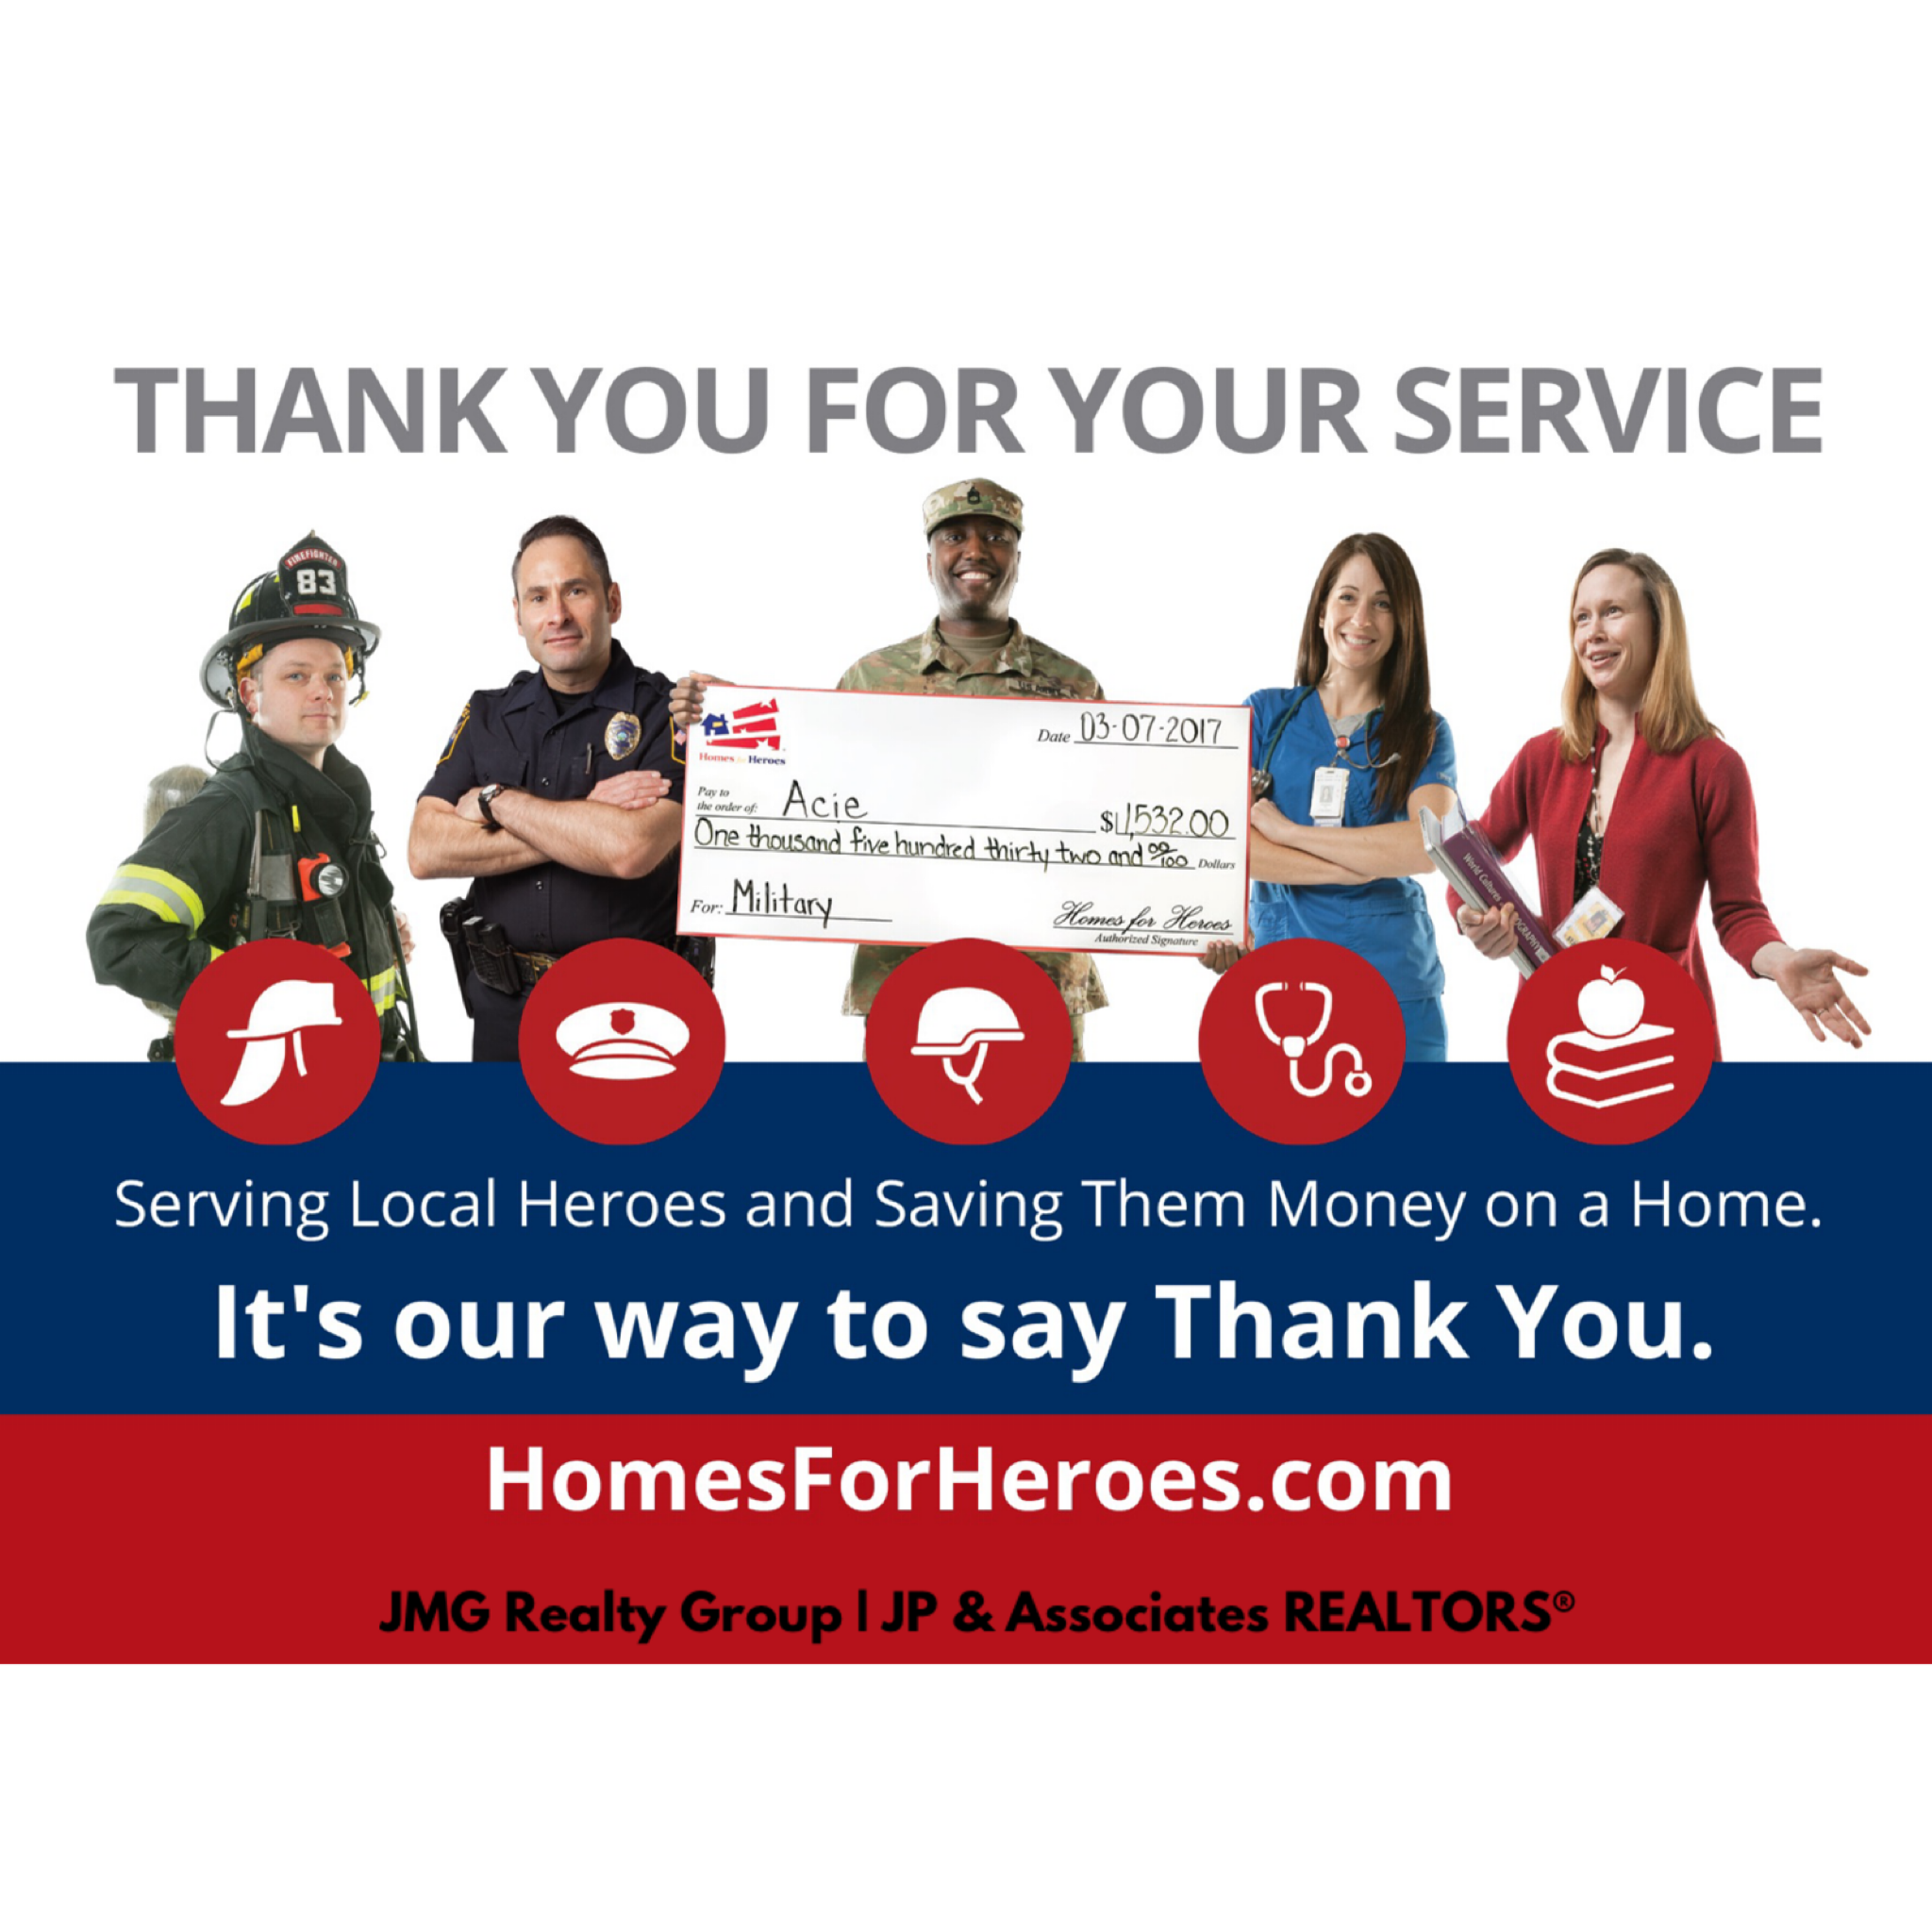 We're committed to serving heroes & saving them money on a